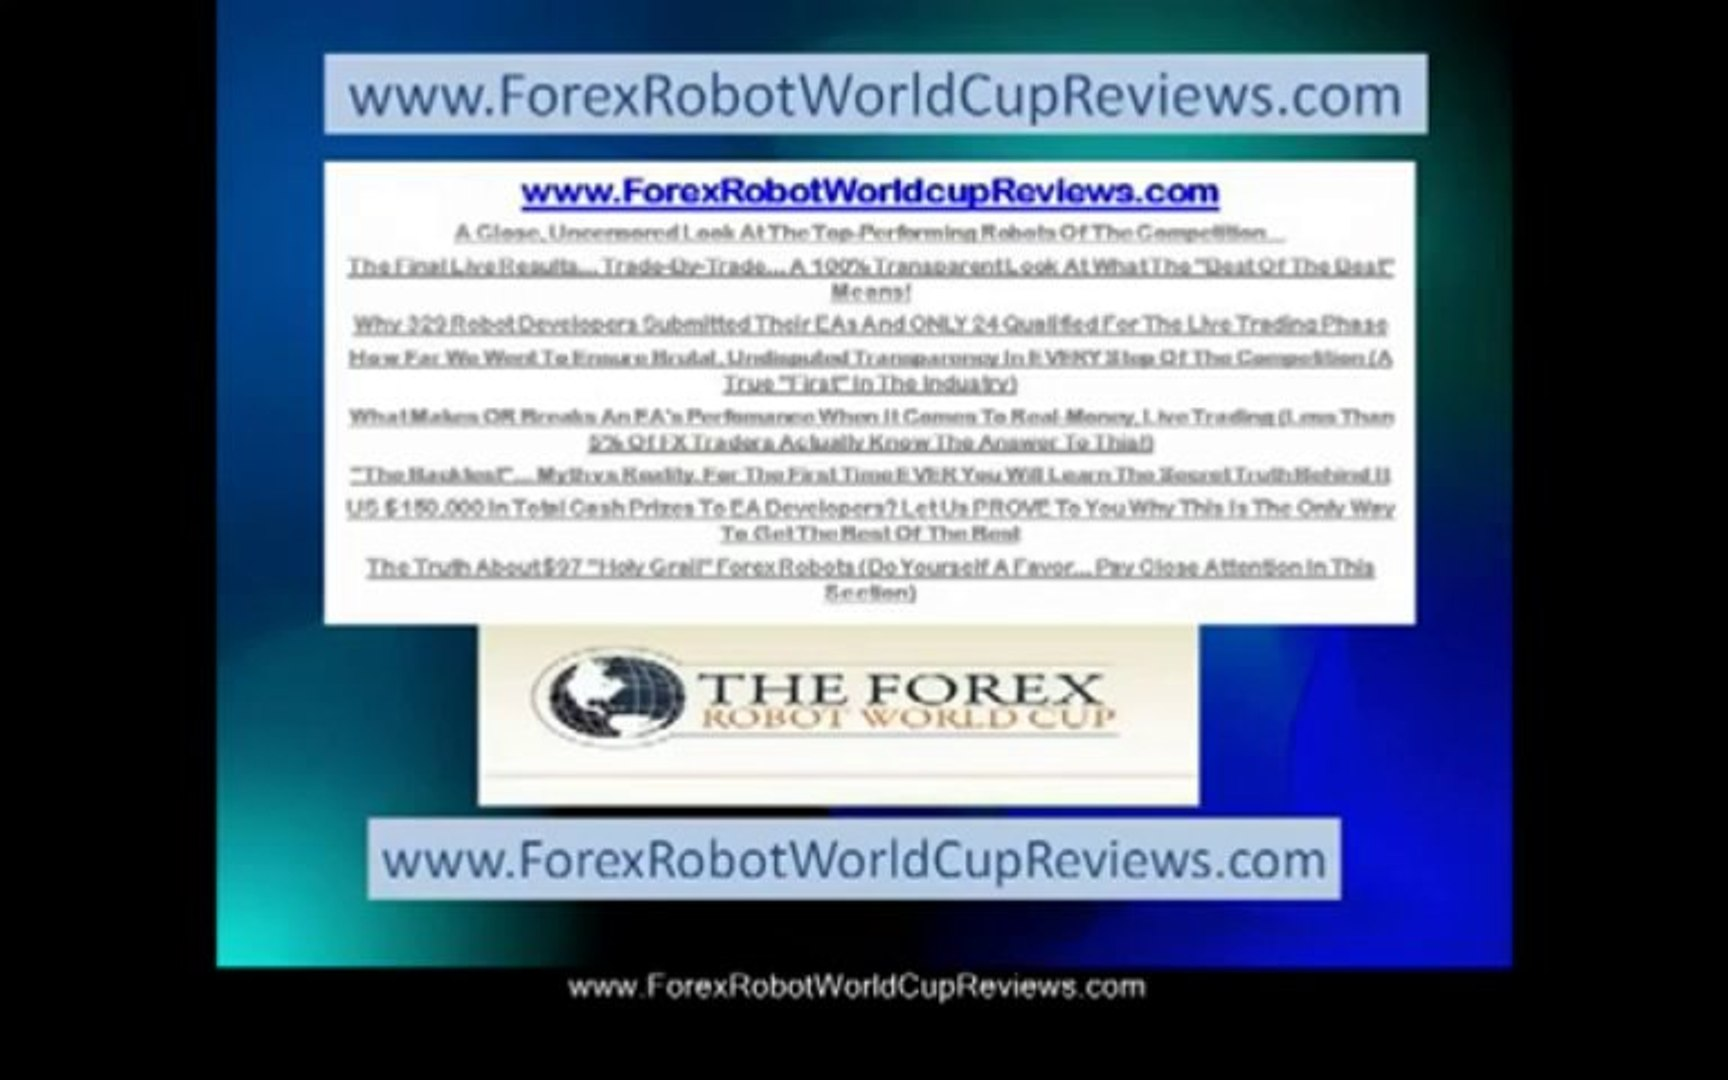 Forex Trendy-(Forex Software)--Forex Robot World Cup Reviews--Forex Software-The Best Forex Software